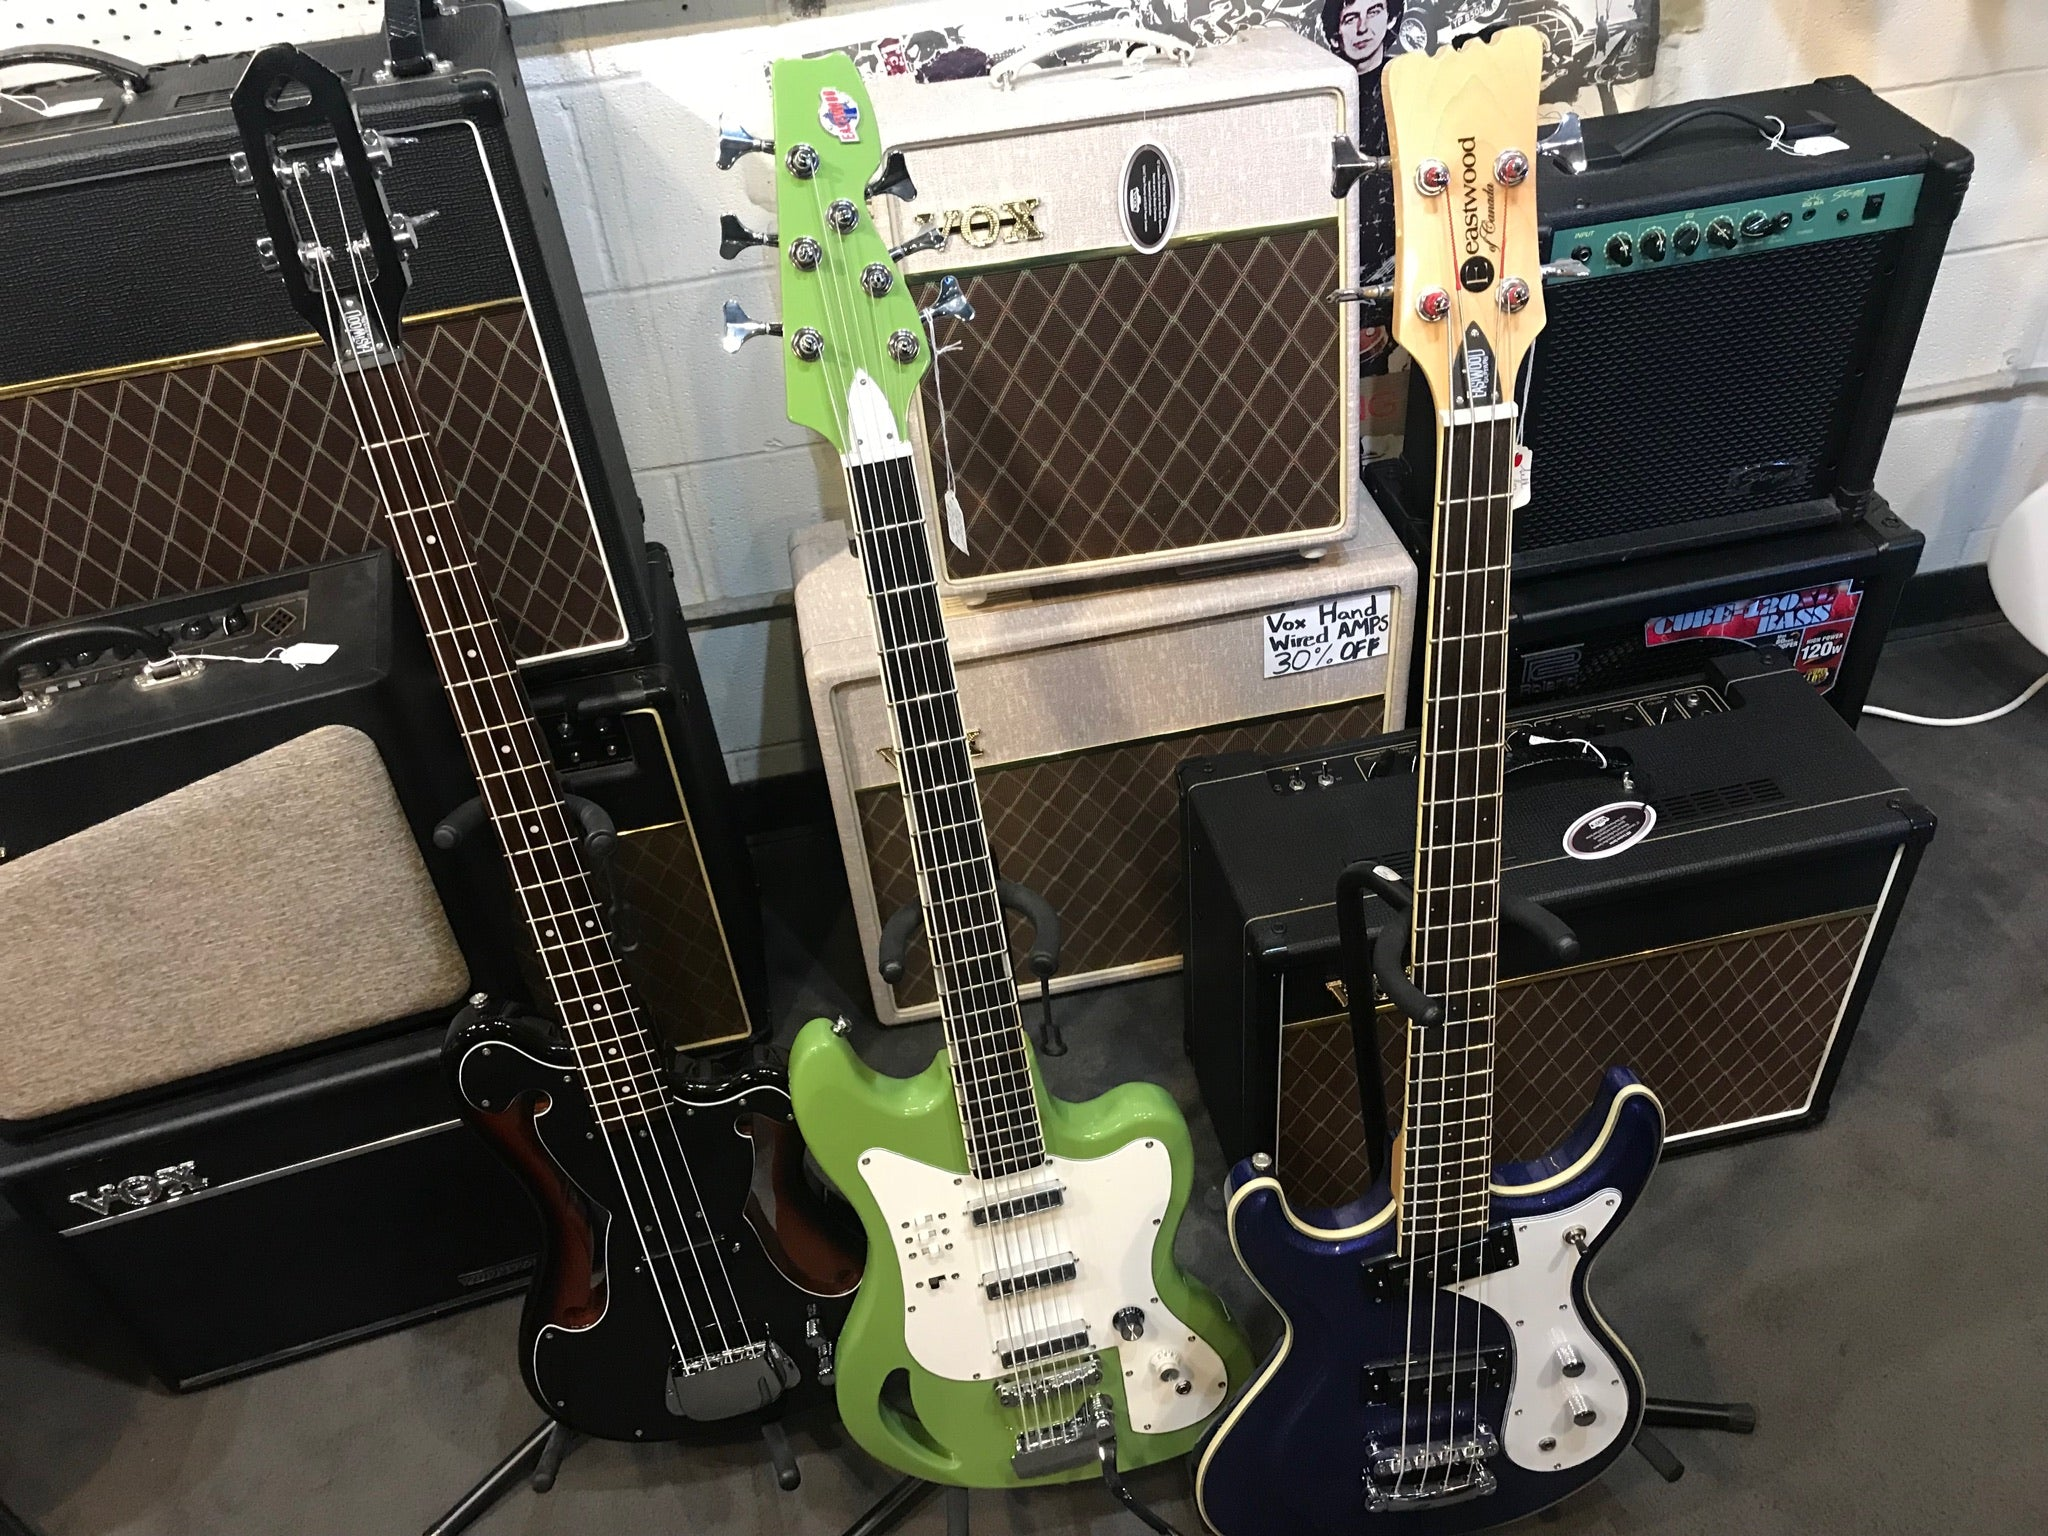 Eastwood Guitars at South Austin Music